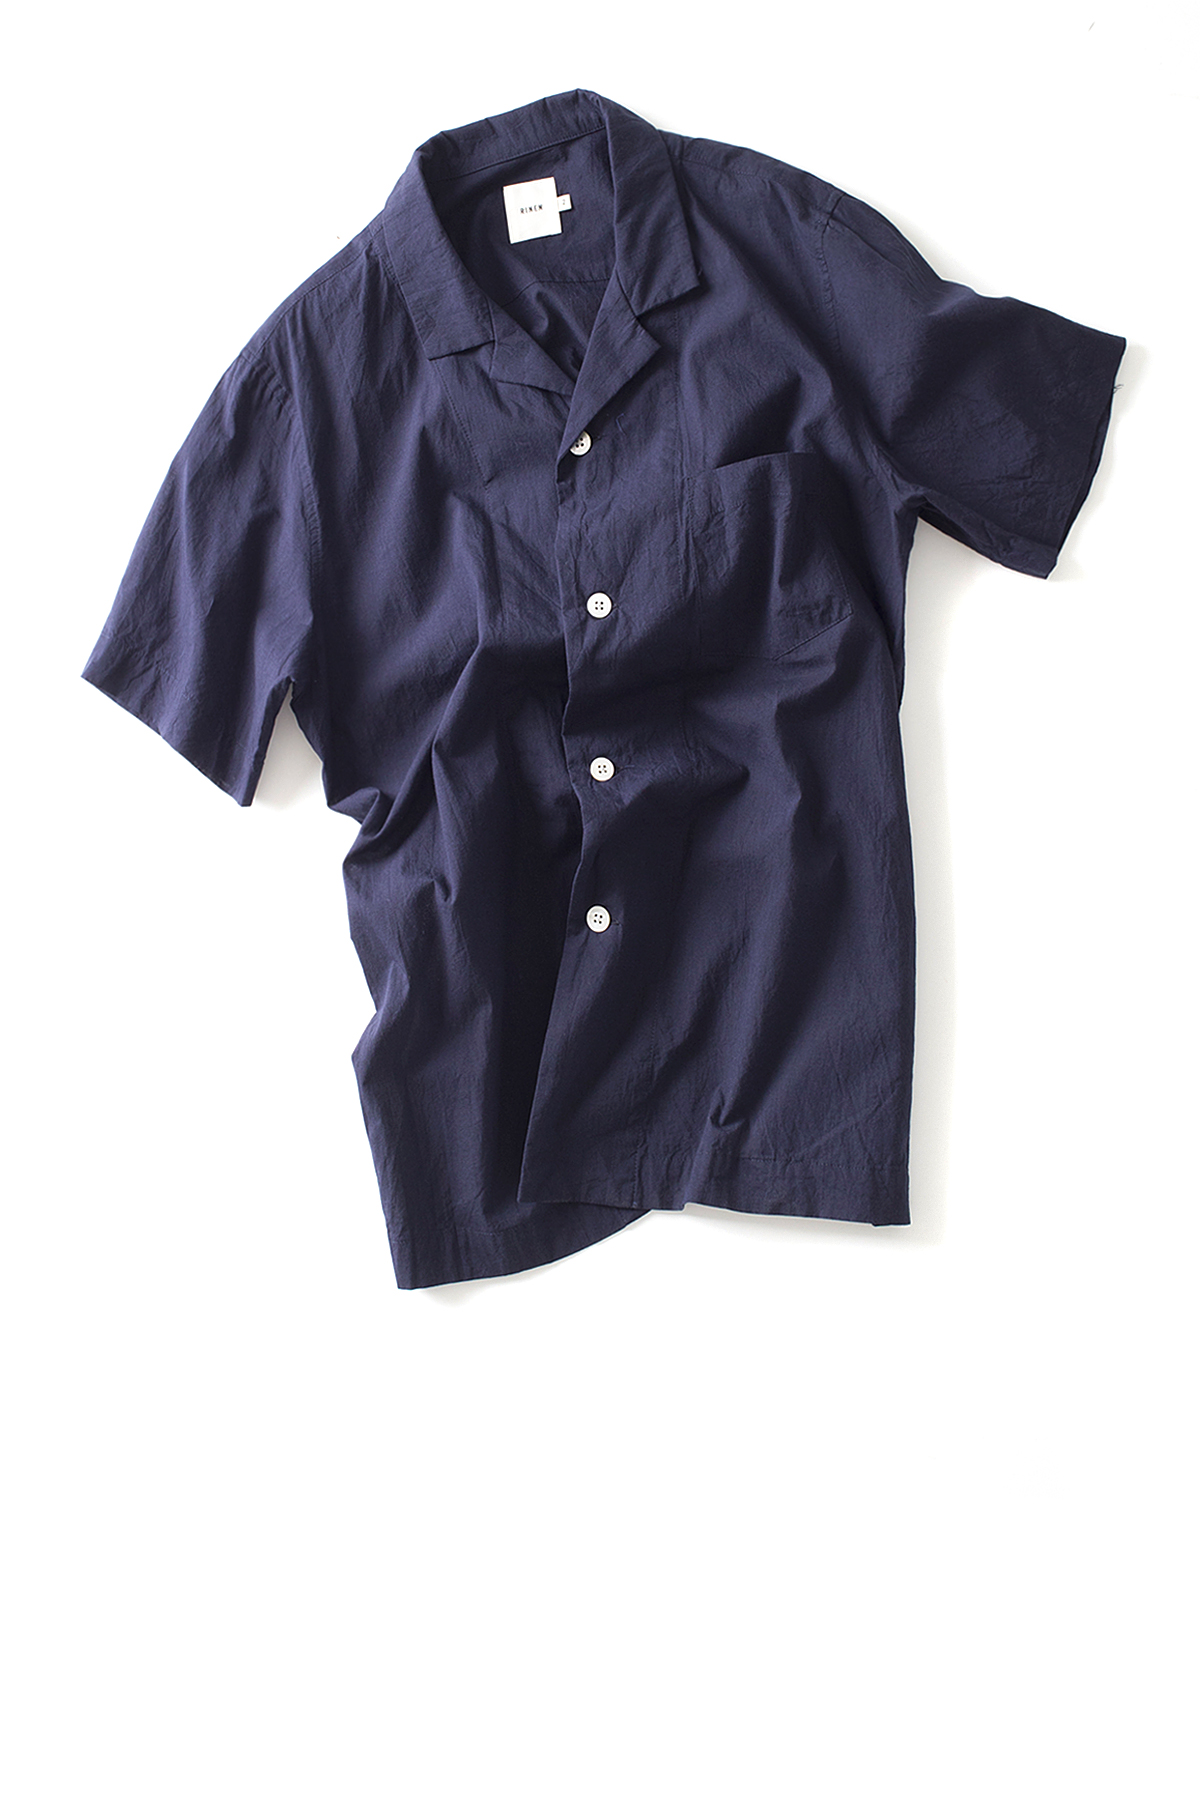 RINEN : Open Collar Shirt (Navy)